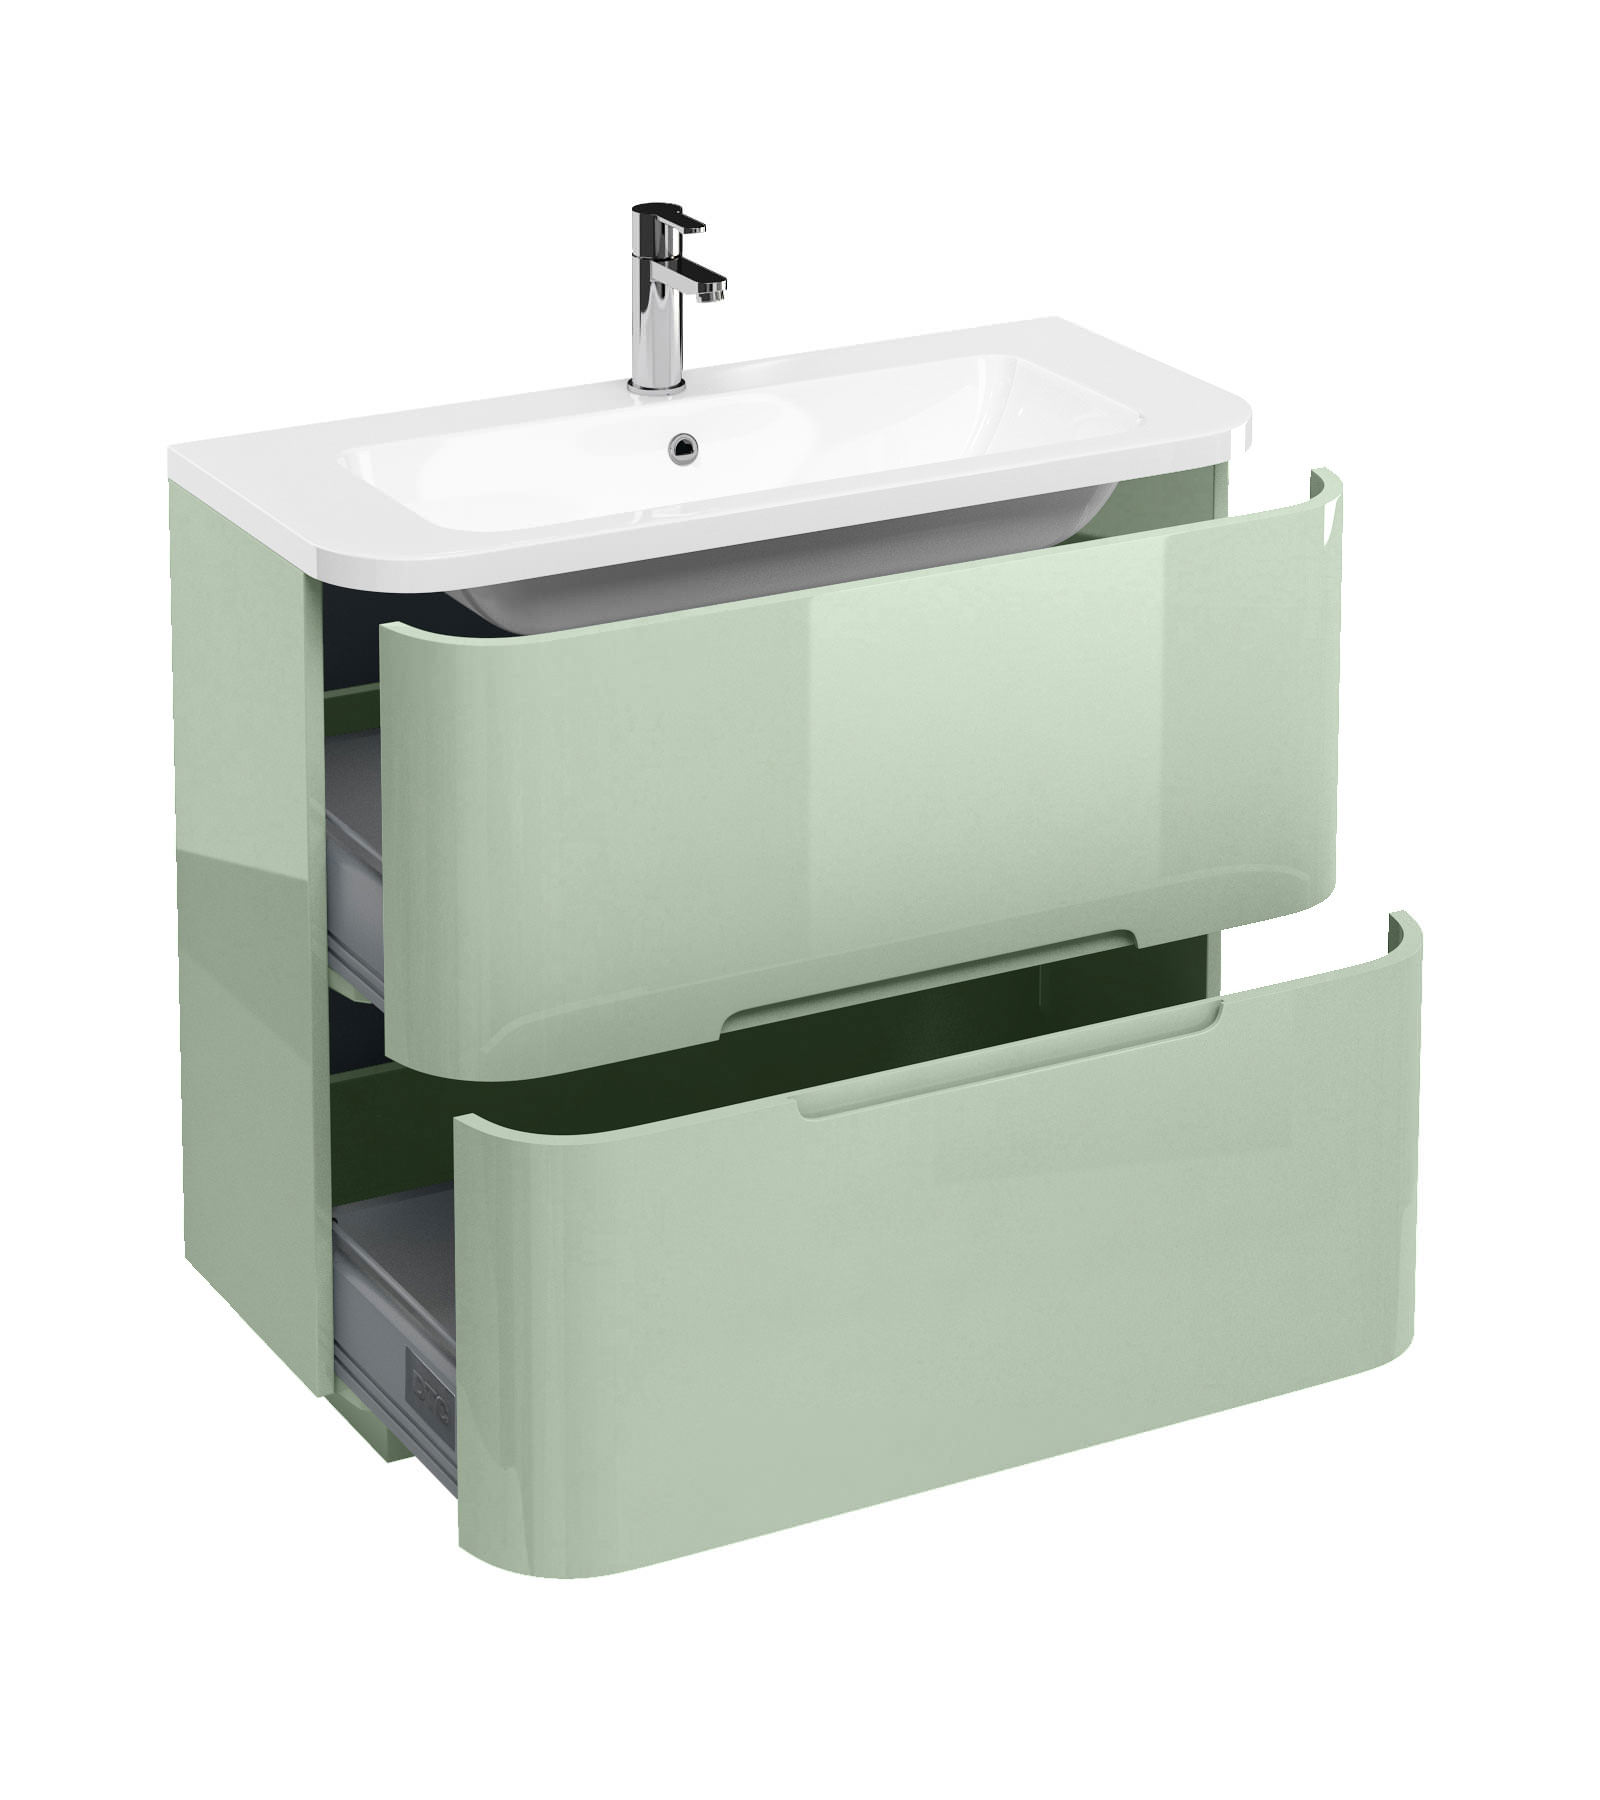 Britton aqua cabinet floor mounted drawer unit 900mm with for Floor standing bathroom furniture